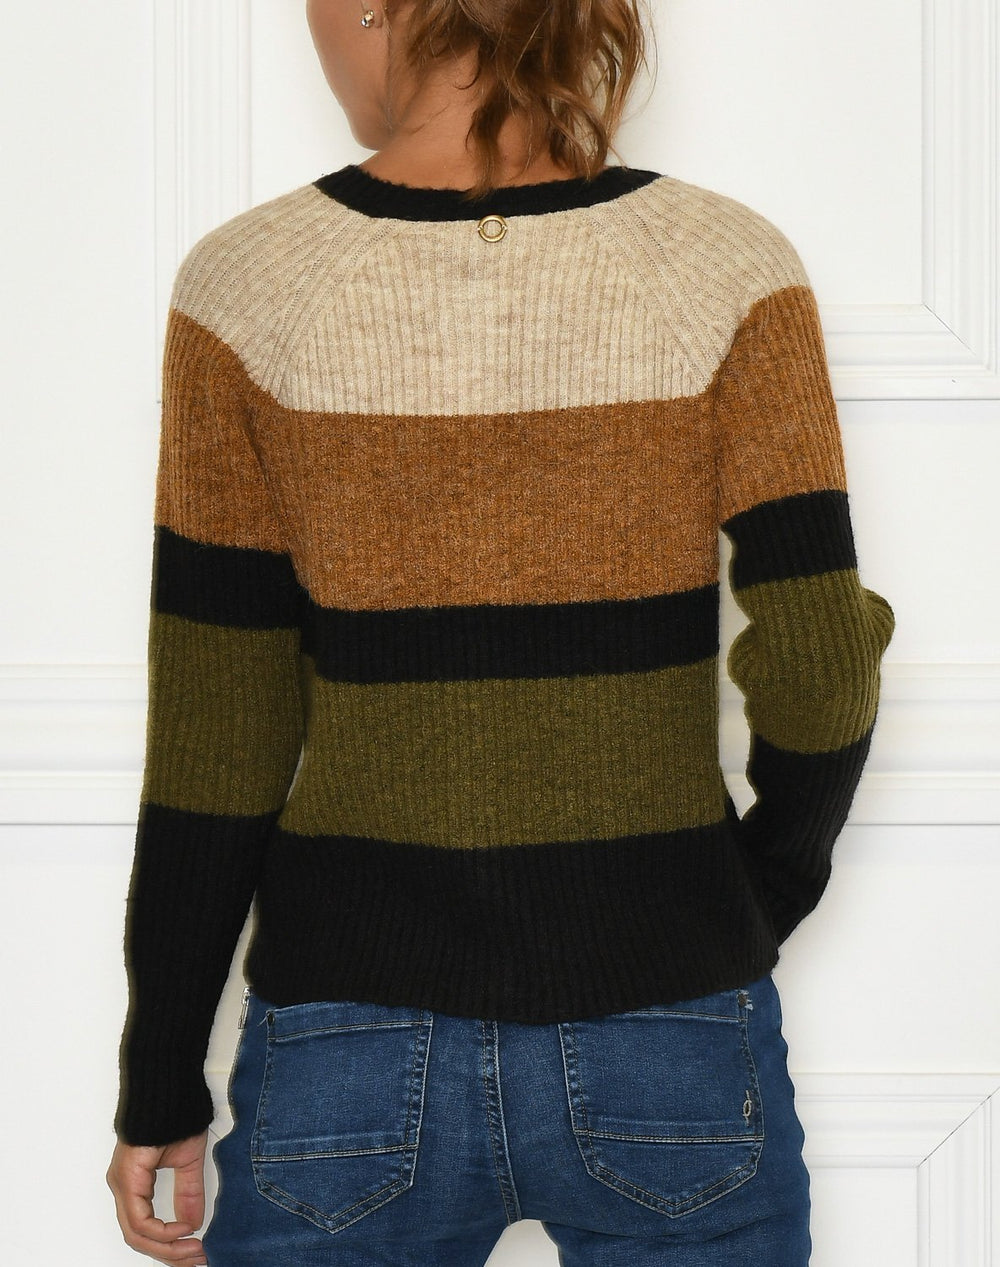 Fransa FRMeblock 3 cardigan cathay spice mix - Online-Mode